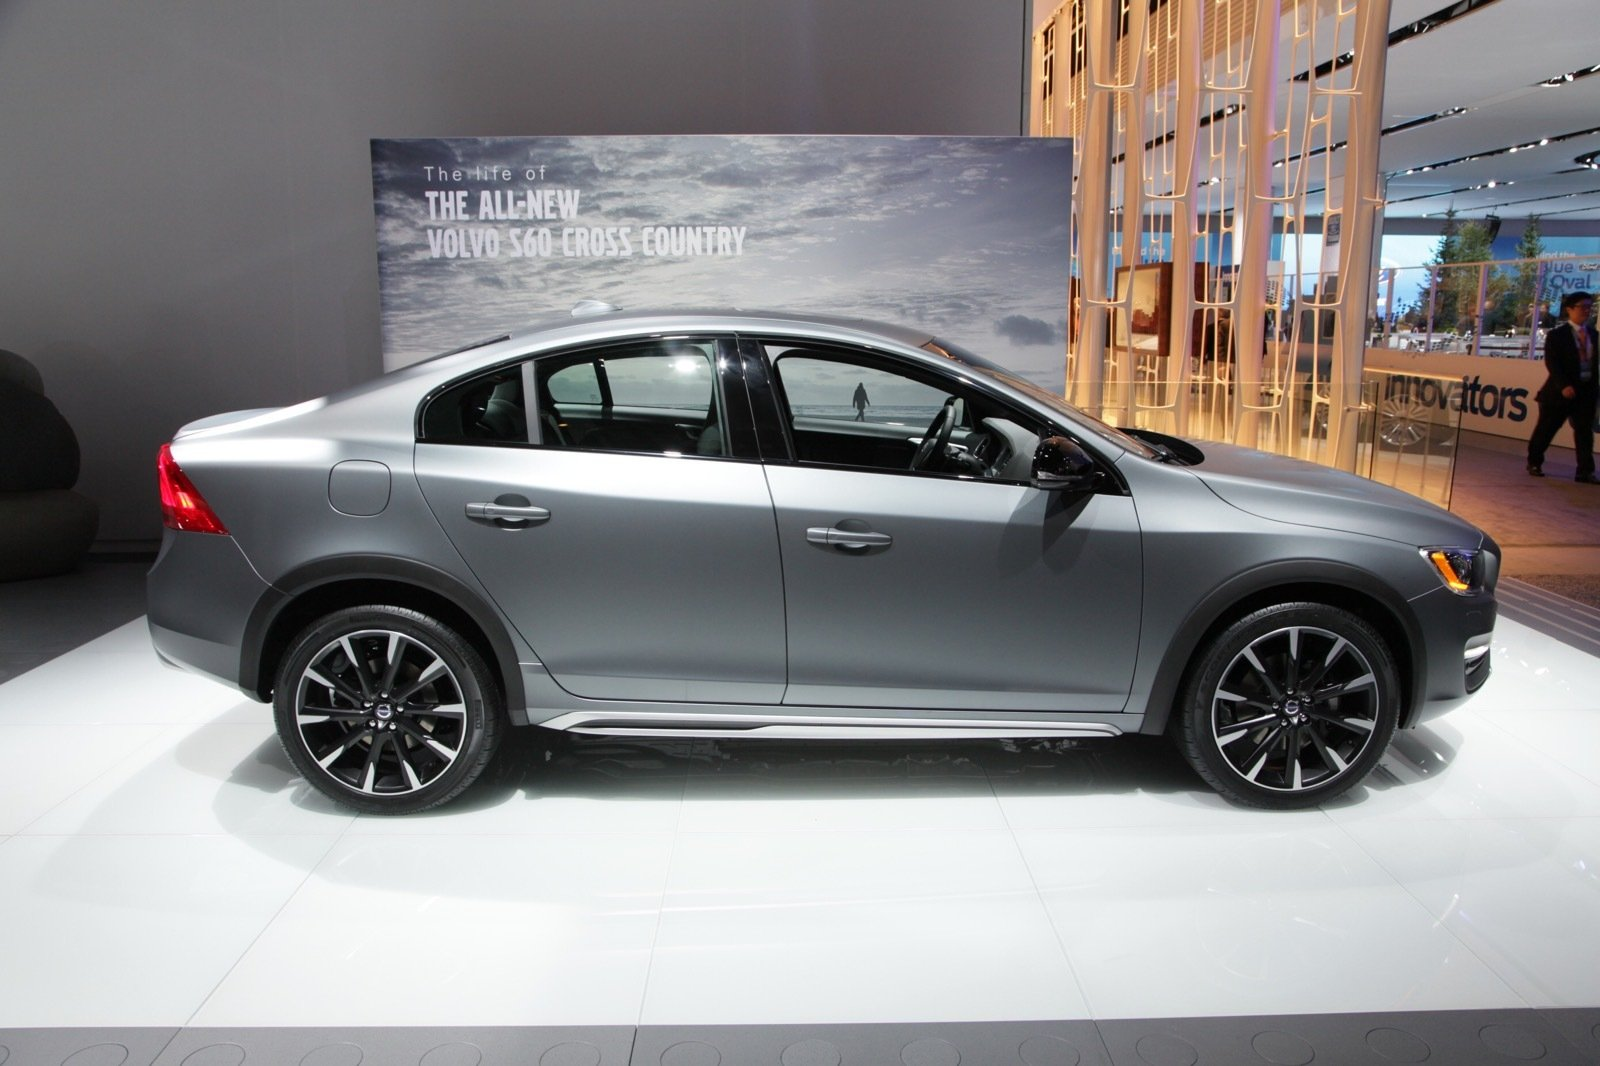 2016 volvo s60 cross country picture 612899 car review top speed. Black Bedroom Furniture Sets. Home Design Ideas